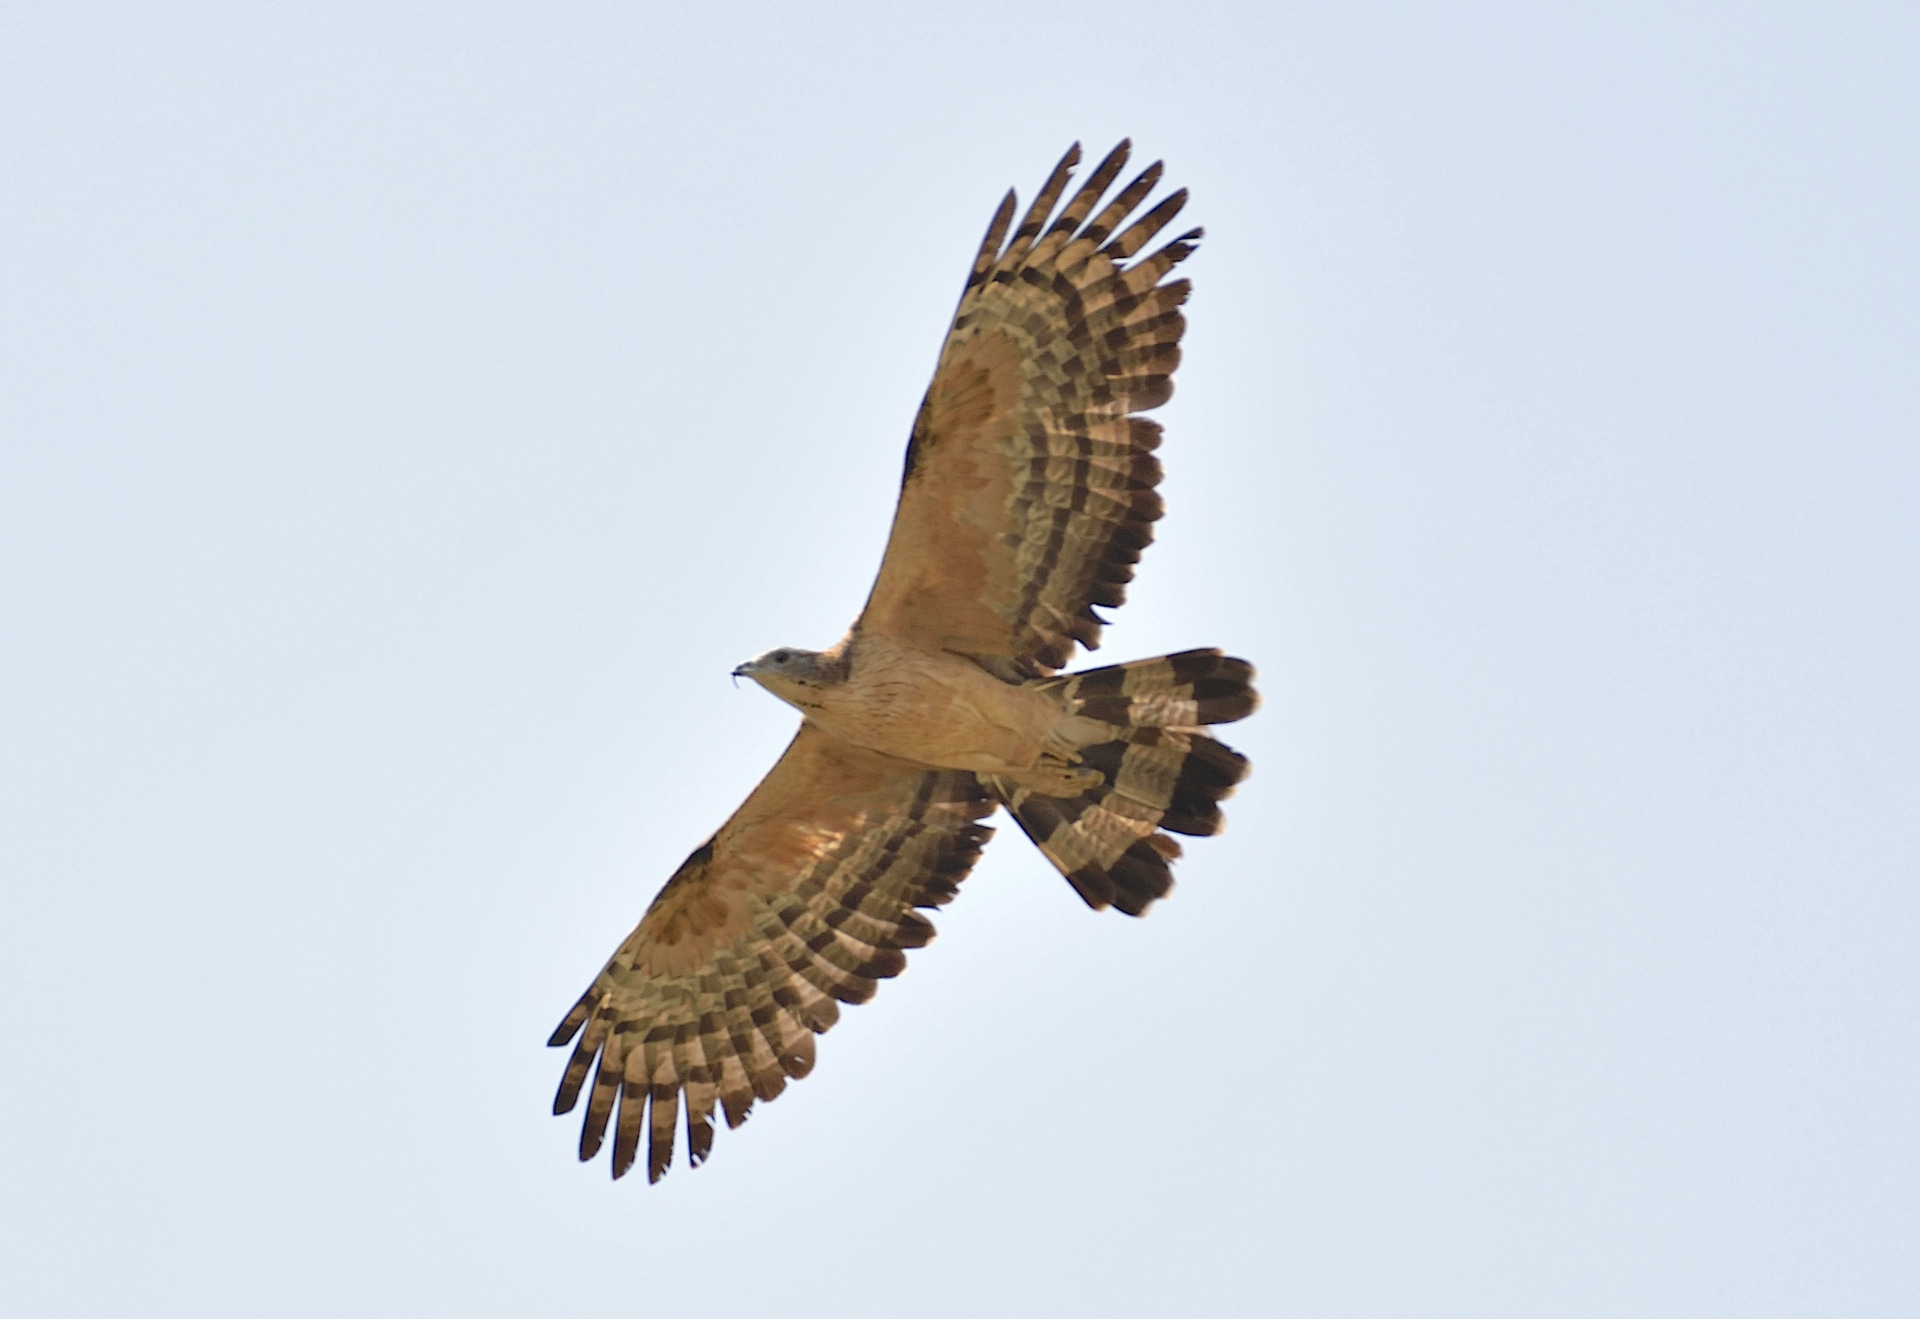 Unlike most raptors, the oriental honey-buzzard has a small pigeon-like head and long neck which help to identify the bird despite it having many morphs, or plumage colour variations. Photo: Sanjay Sondhi